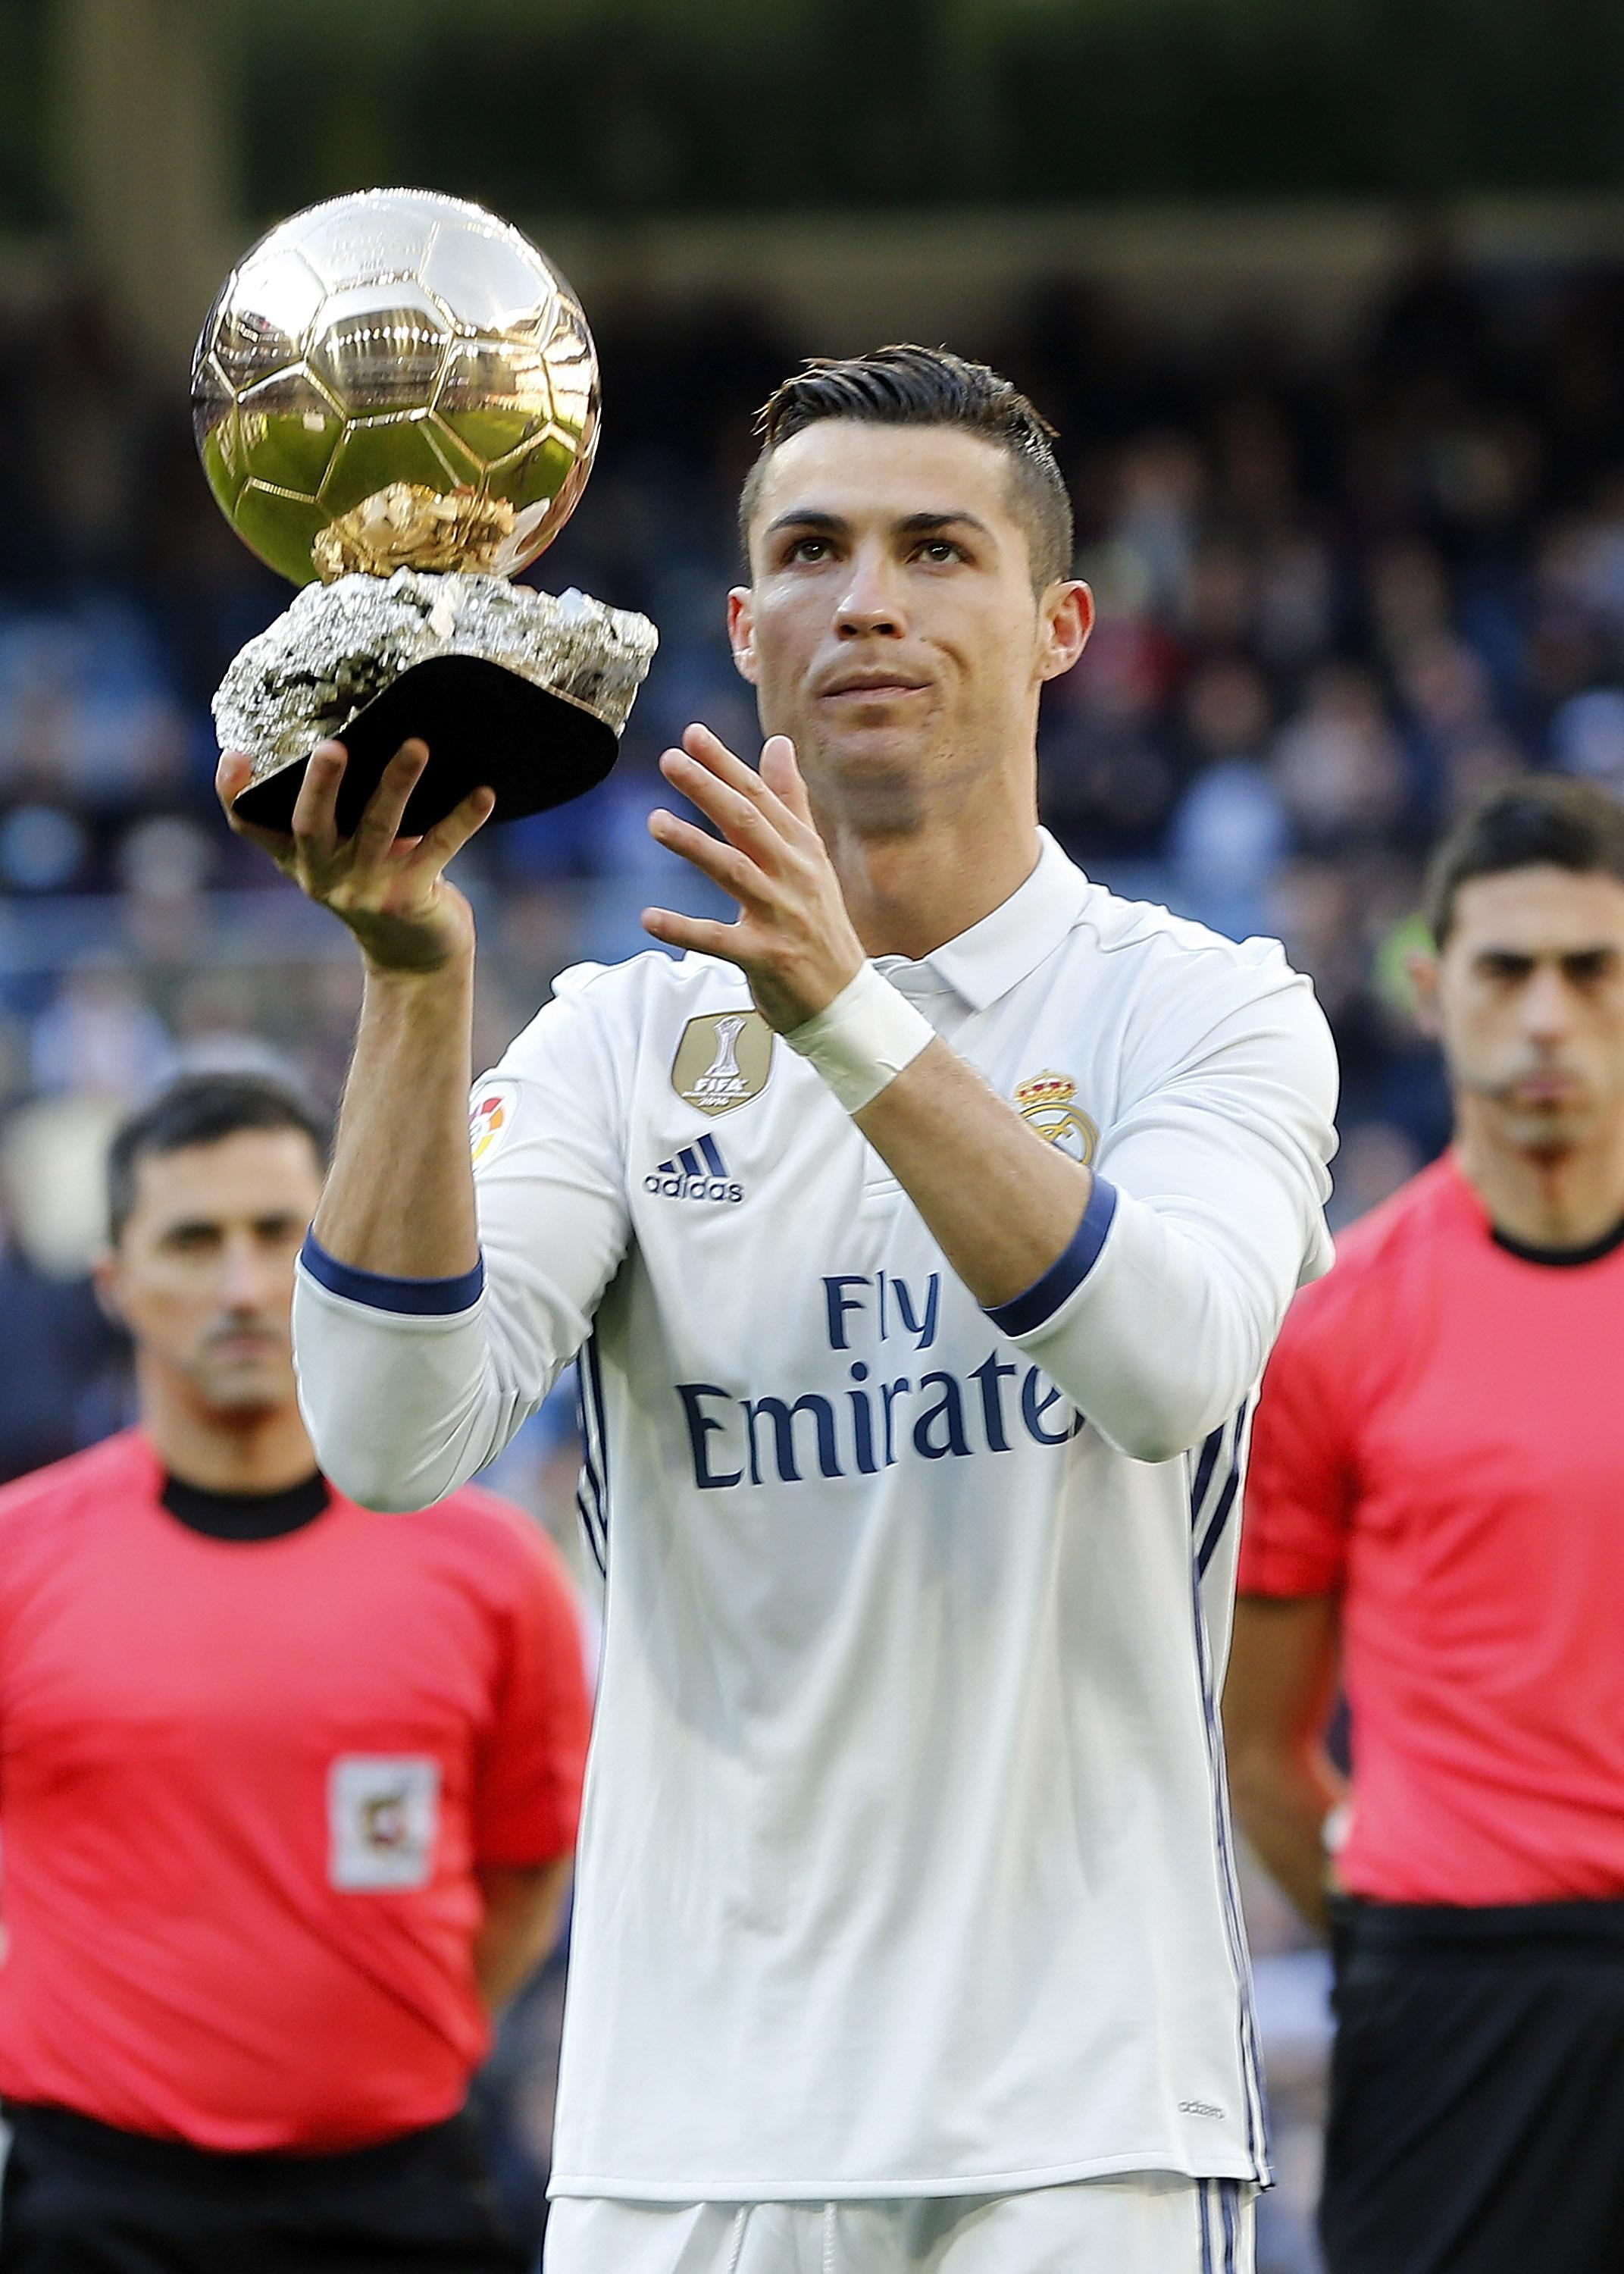 Real Madrid star Ronaldo is the reigning world player of the year